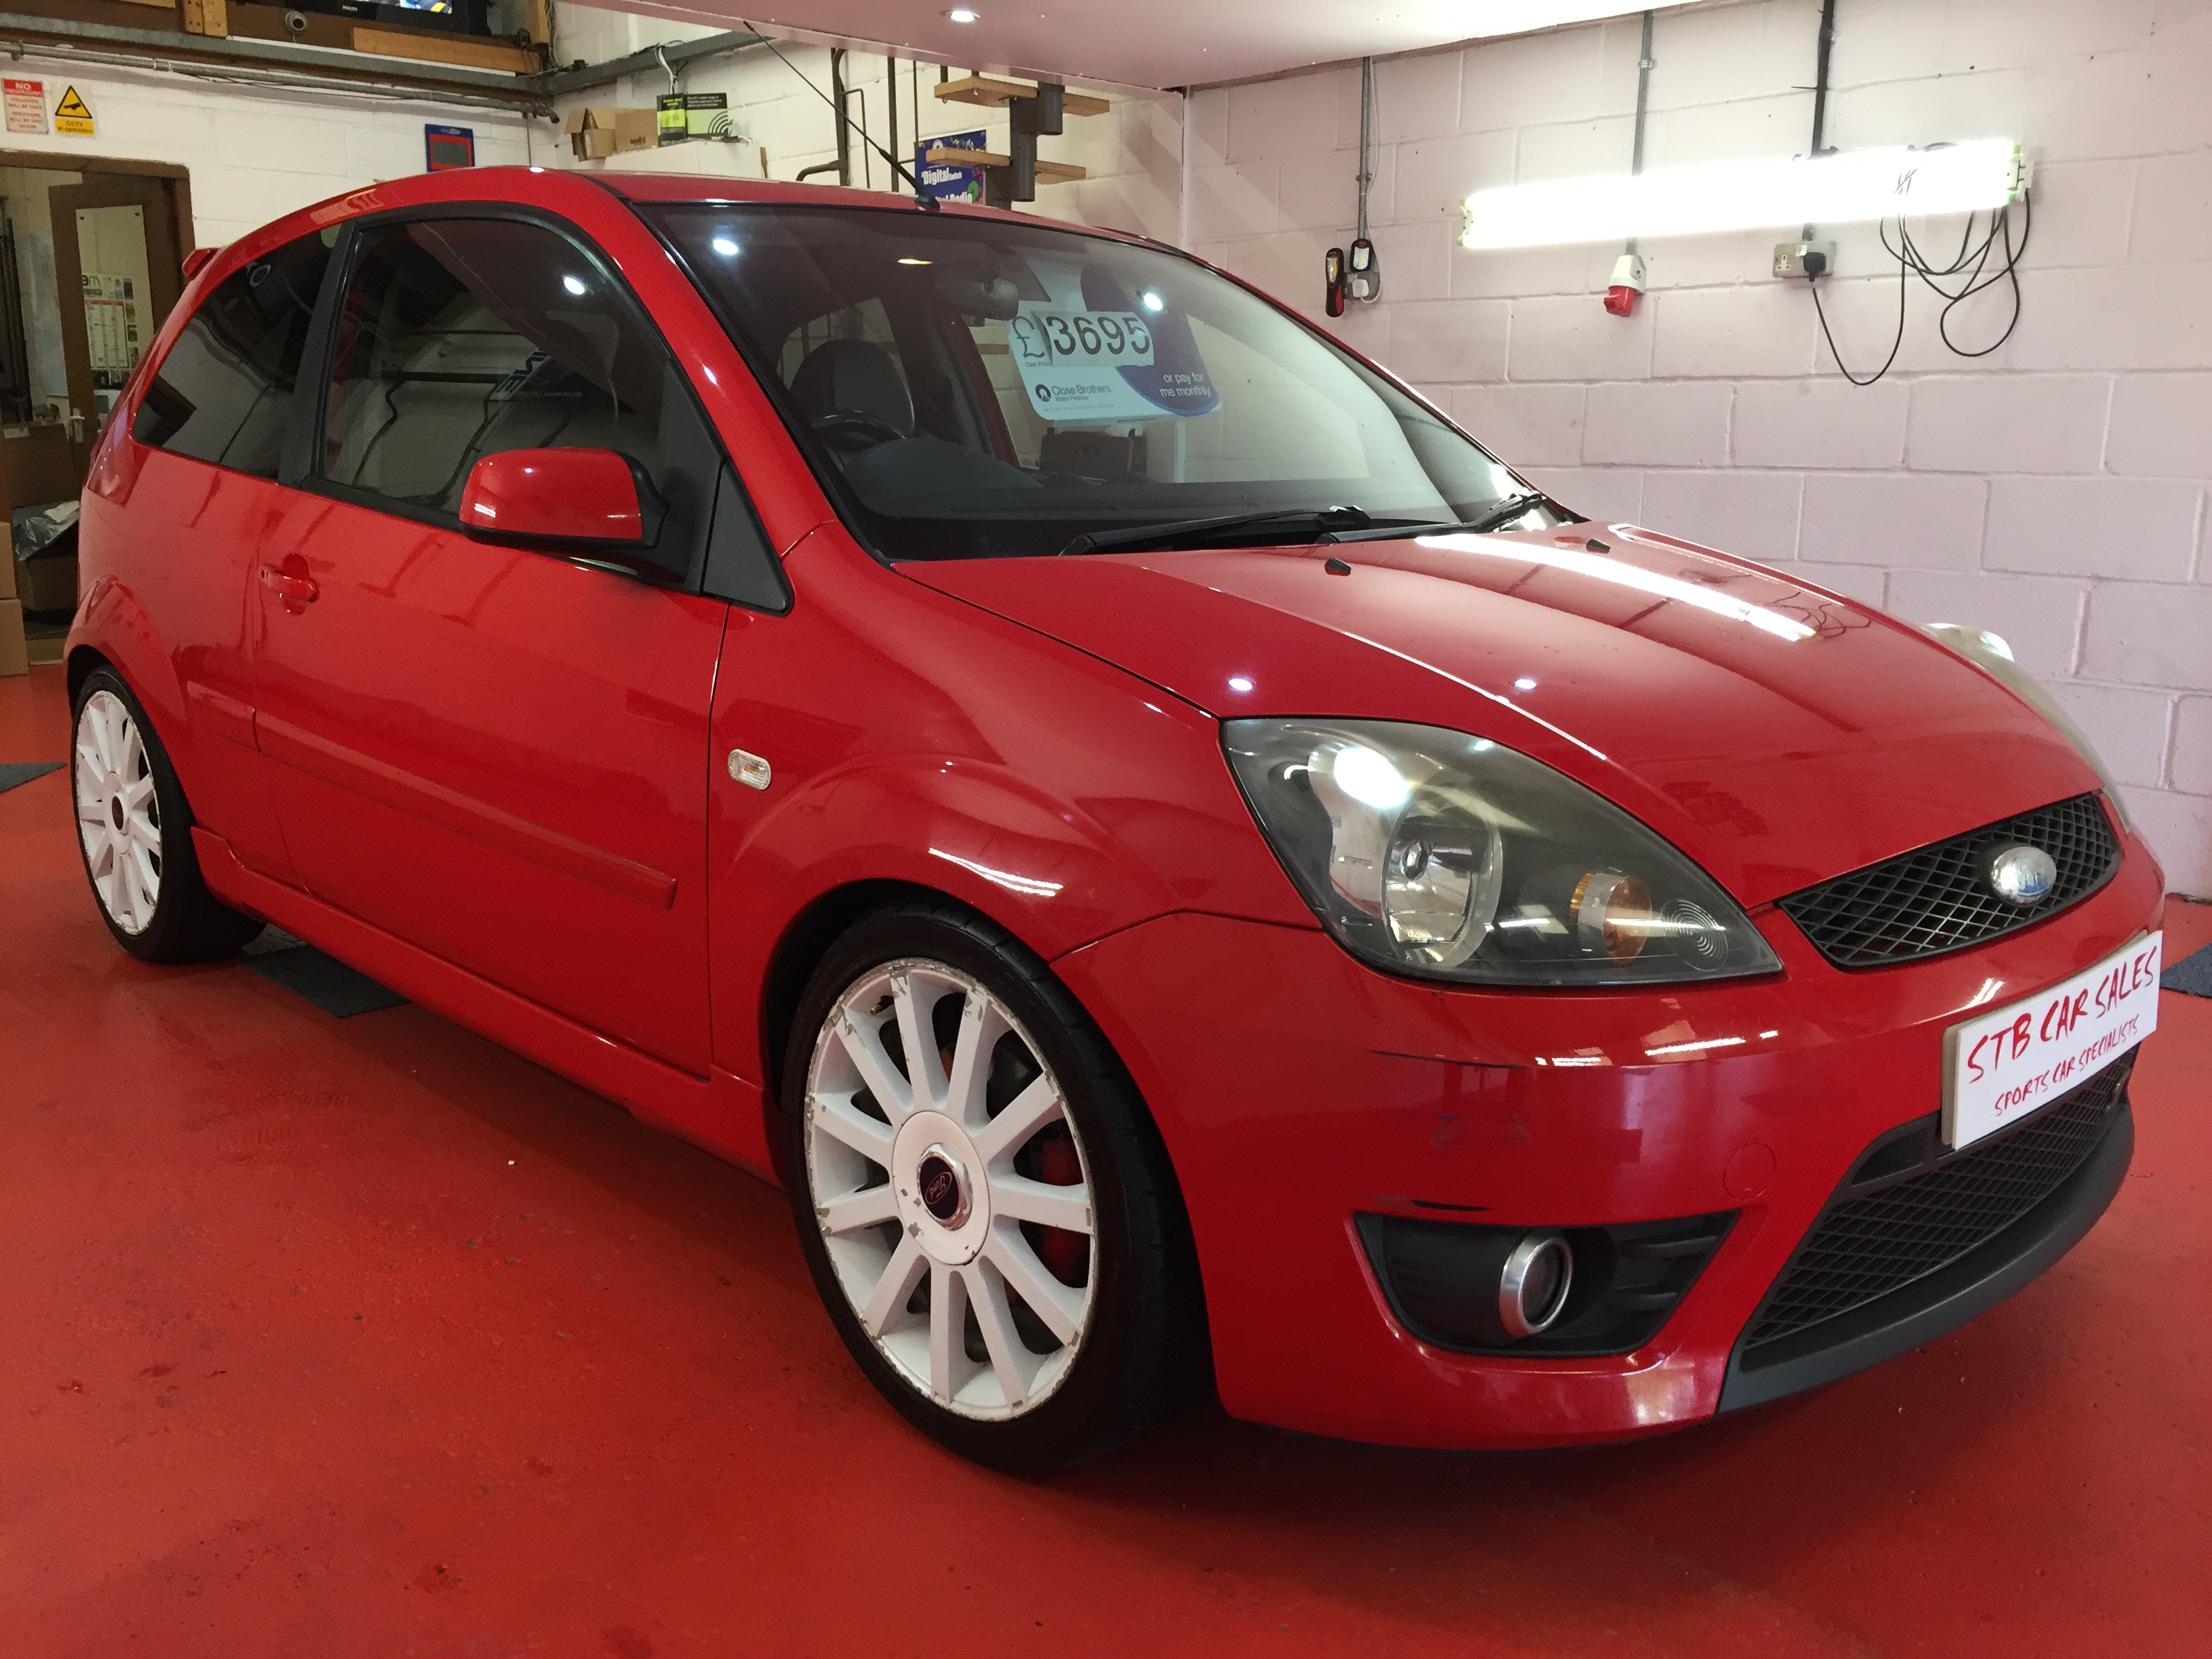 ford fiesta 2 0 2005 5my st in bright red with 91644 miles. Black Bedroom Furniture Sets. Home Design Ideas